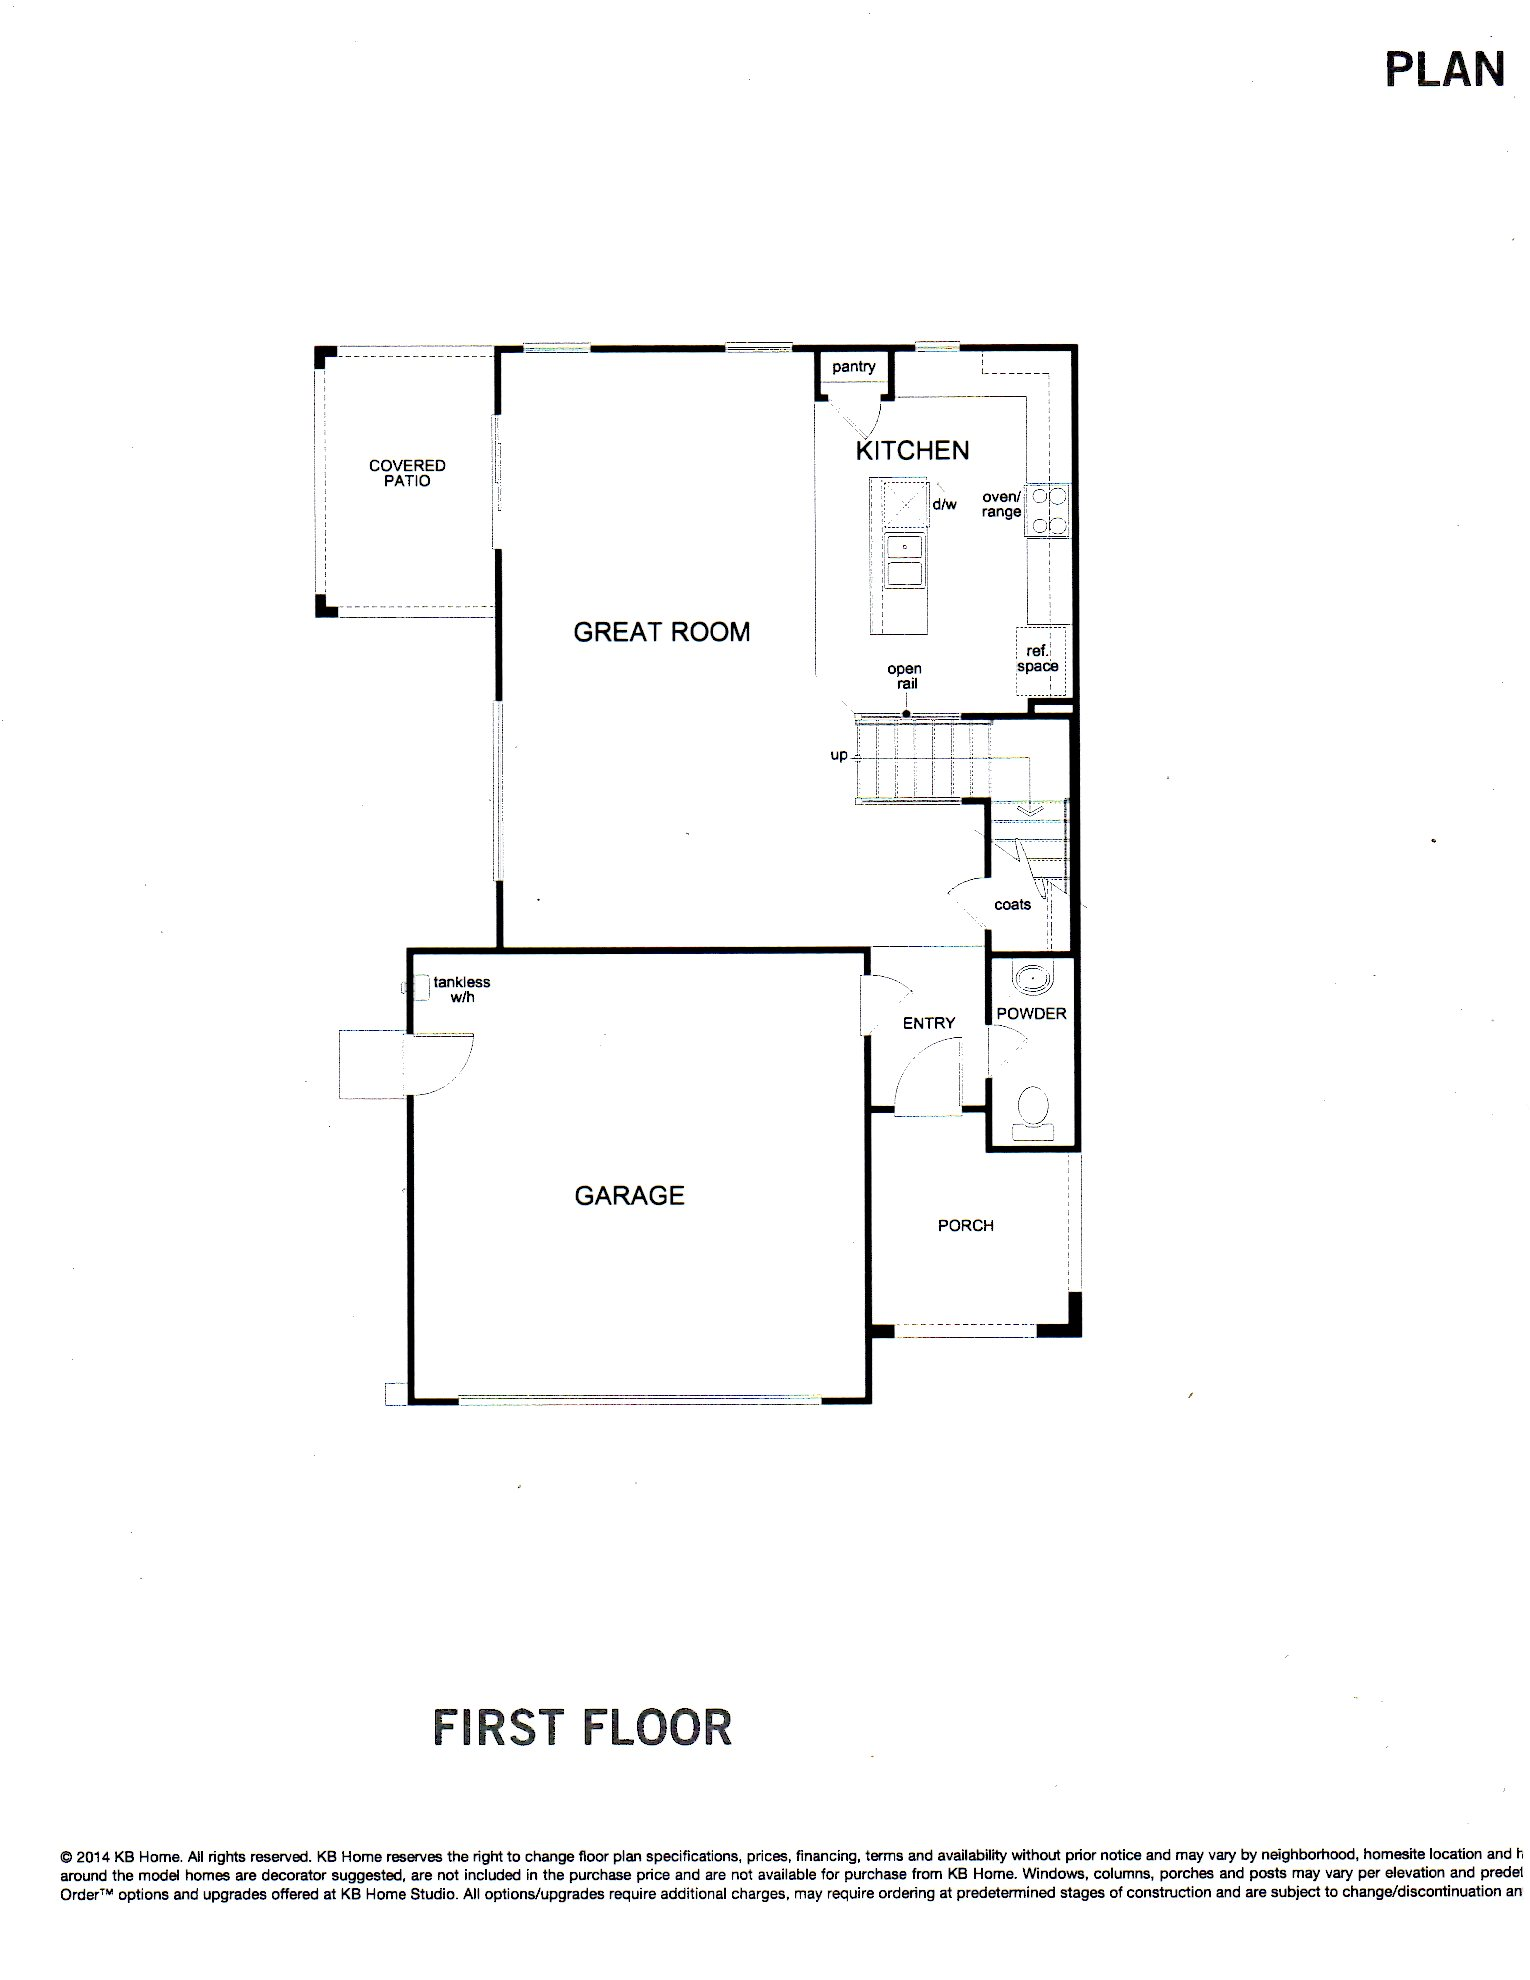 PLAN 1932 -- Two Level Home